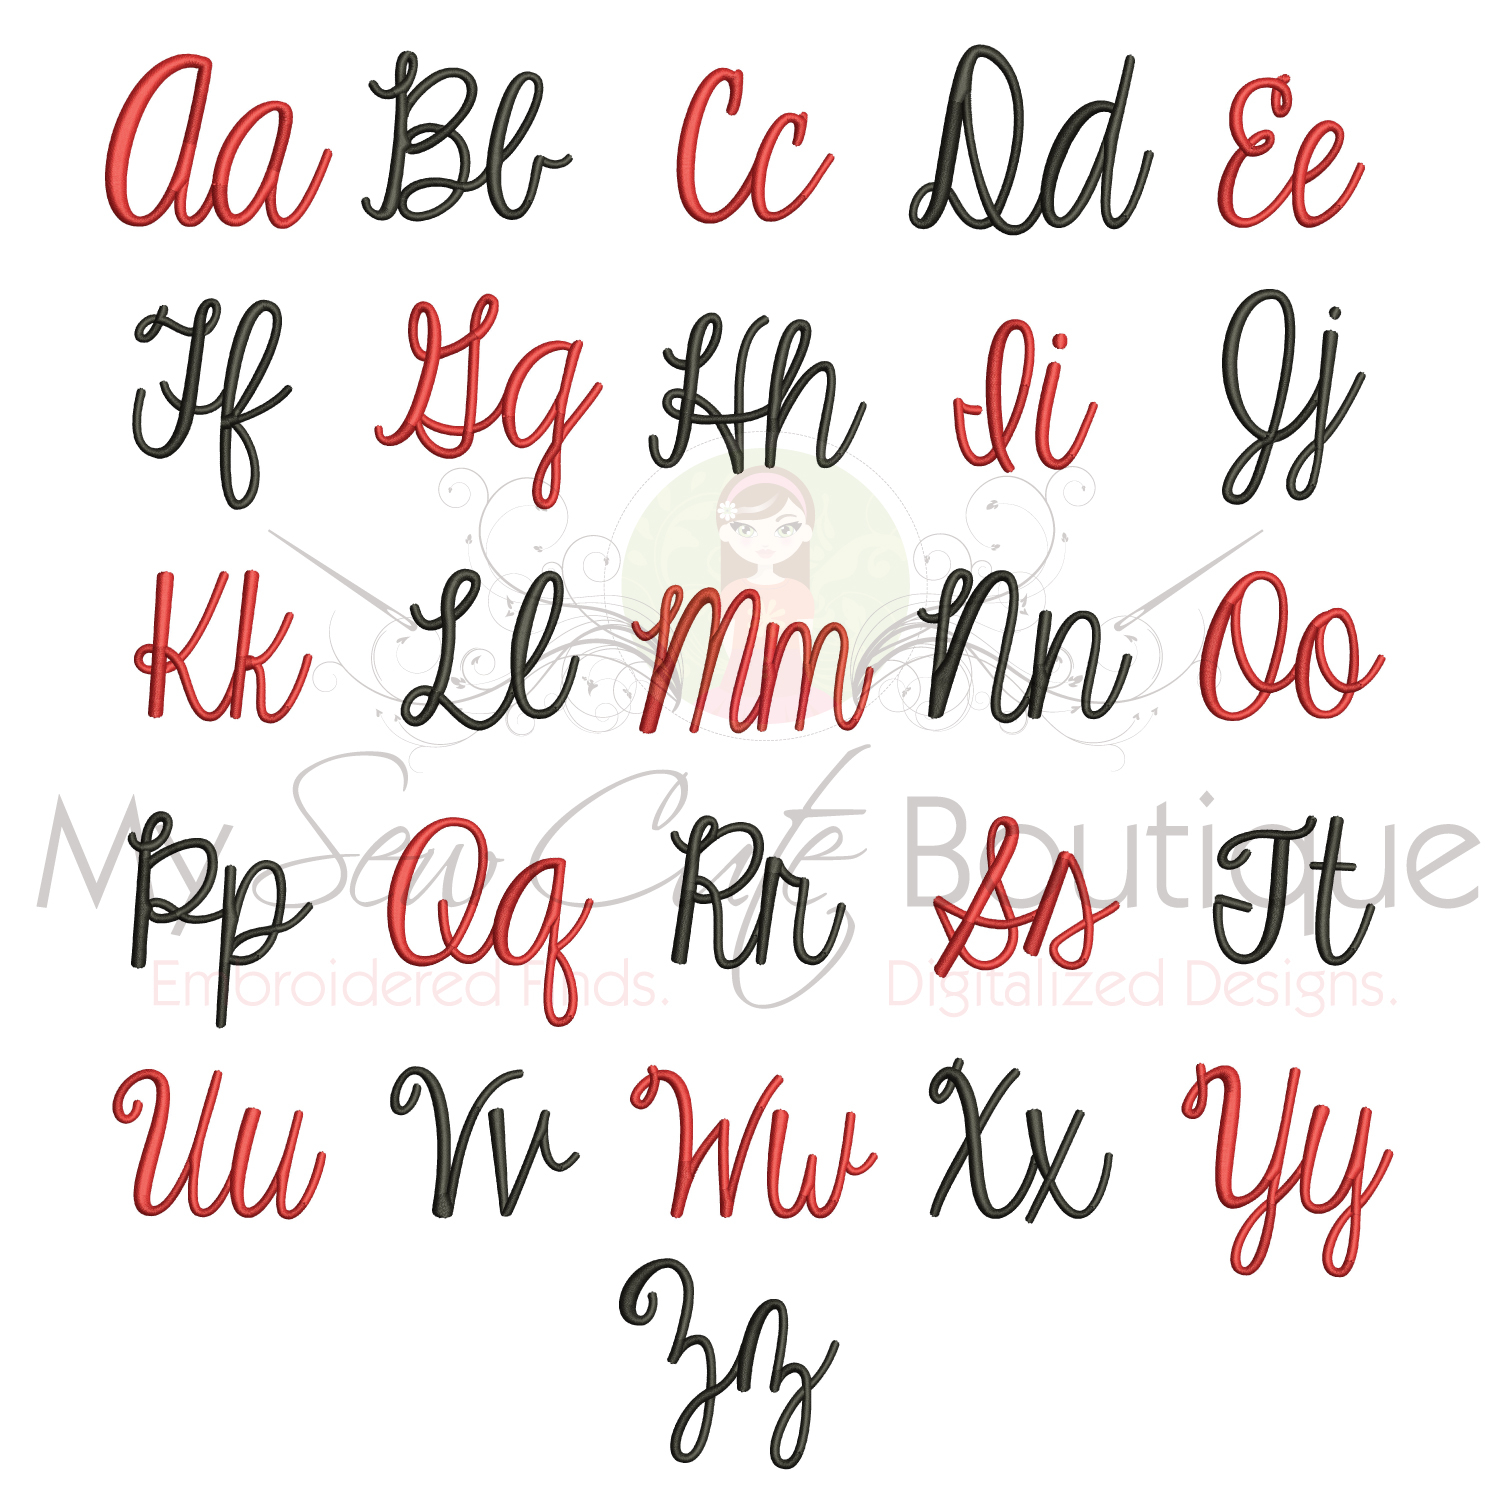 Embroidery Alphabet Patterns Embroidery Fonts Designs For Bx Machine Monogram Pes Files Embrilliance Font Bx Monogram Embroidery Fonts 10 Sizes Instant Download